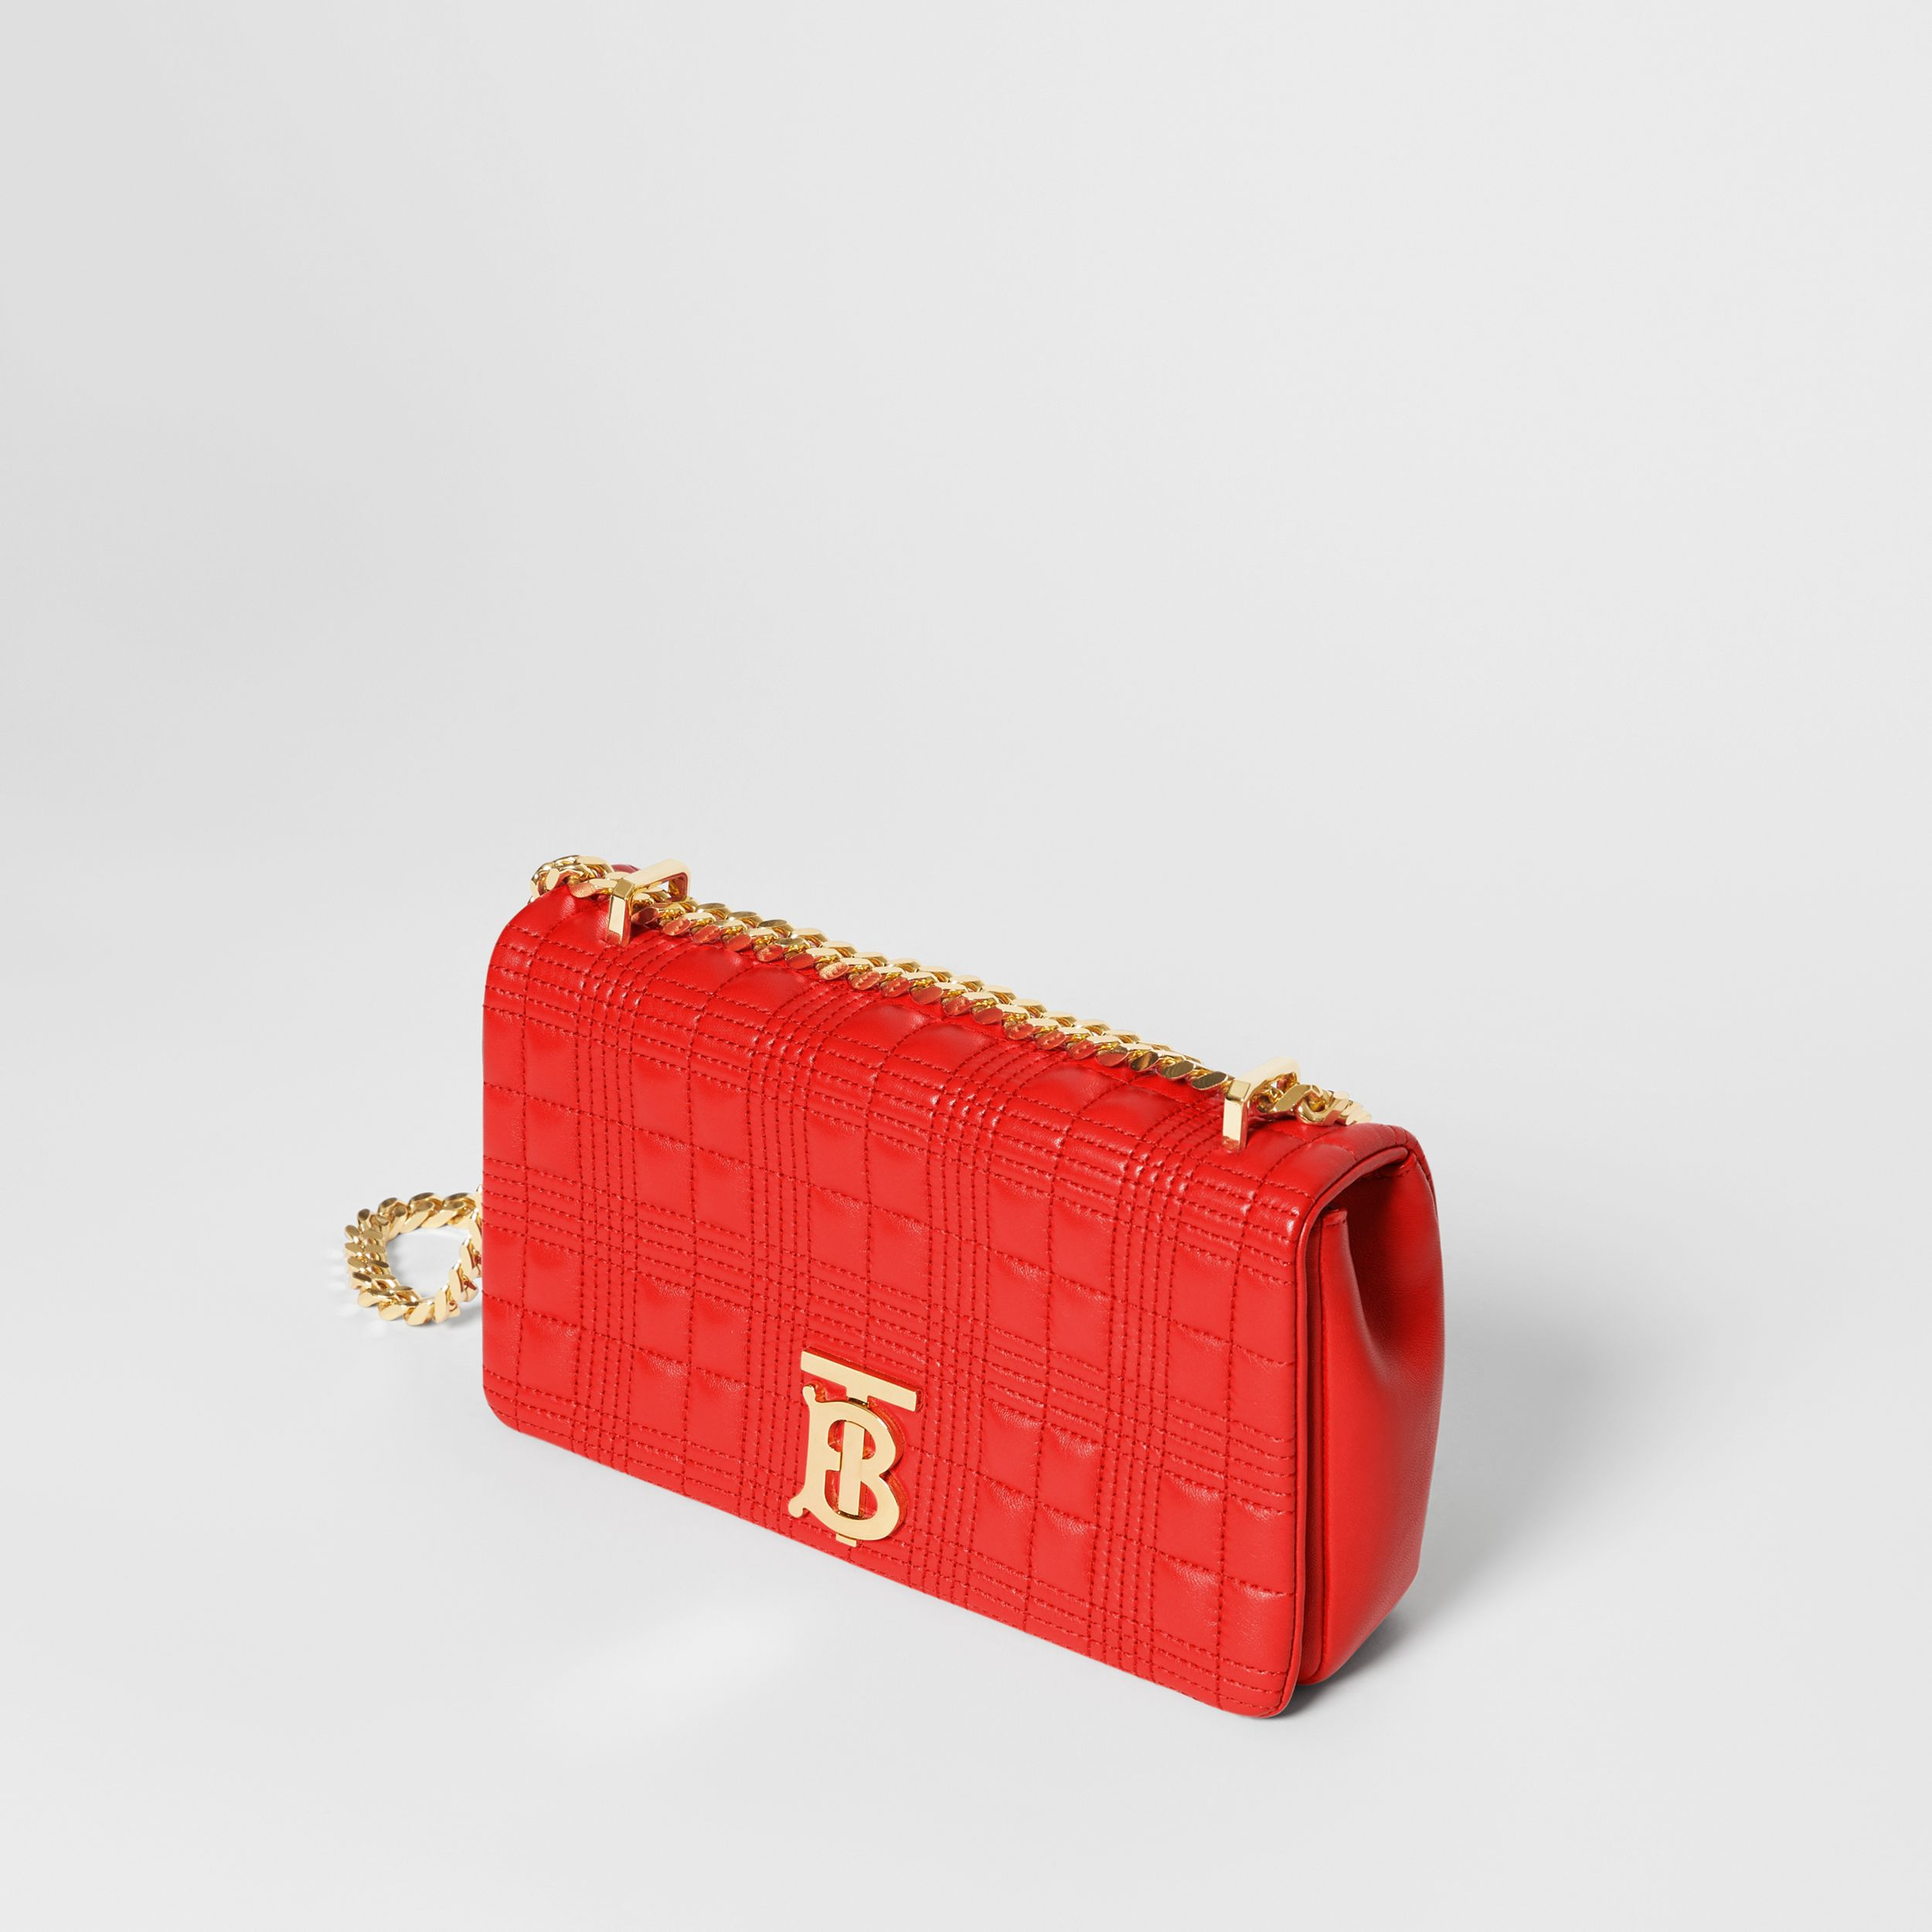 Small Quilted Lambskin Lola Bag in Bright Red - Women | Burberry - 4